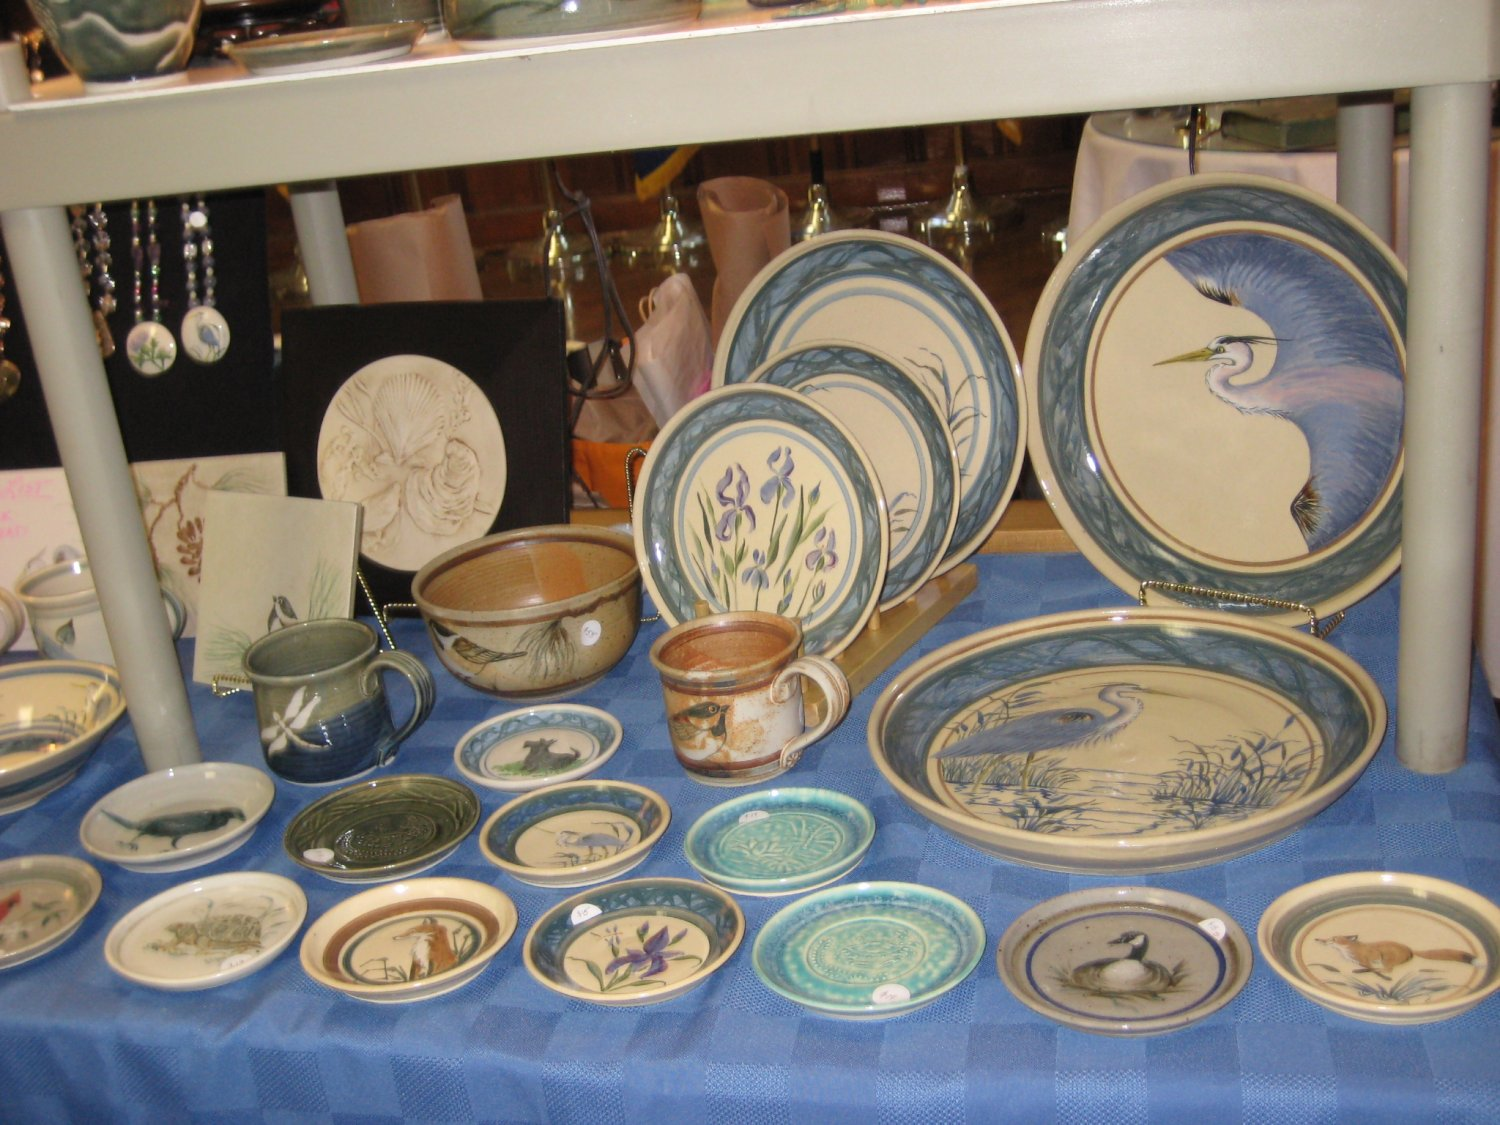 Some of Jean Higgins' handcrafted glazed stoneware.